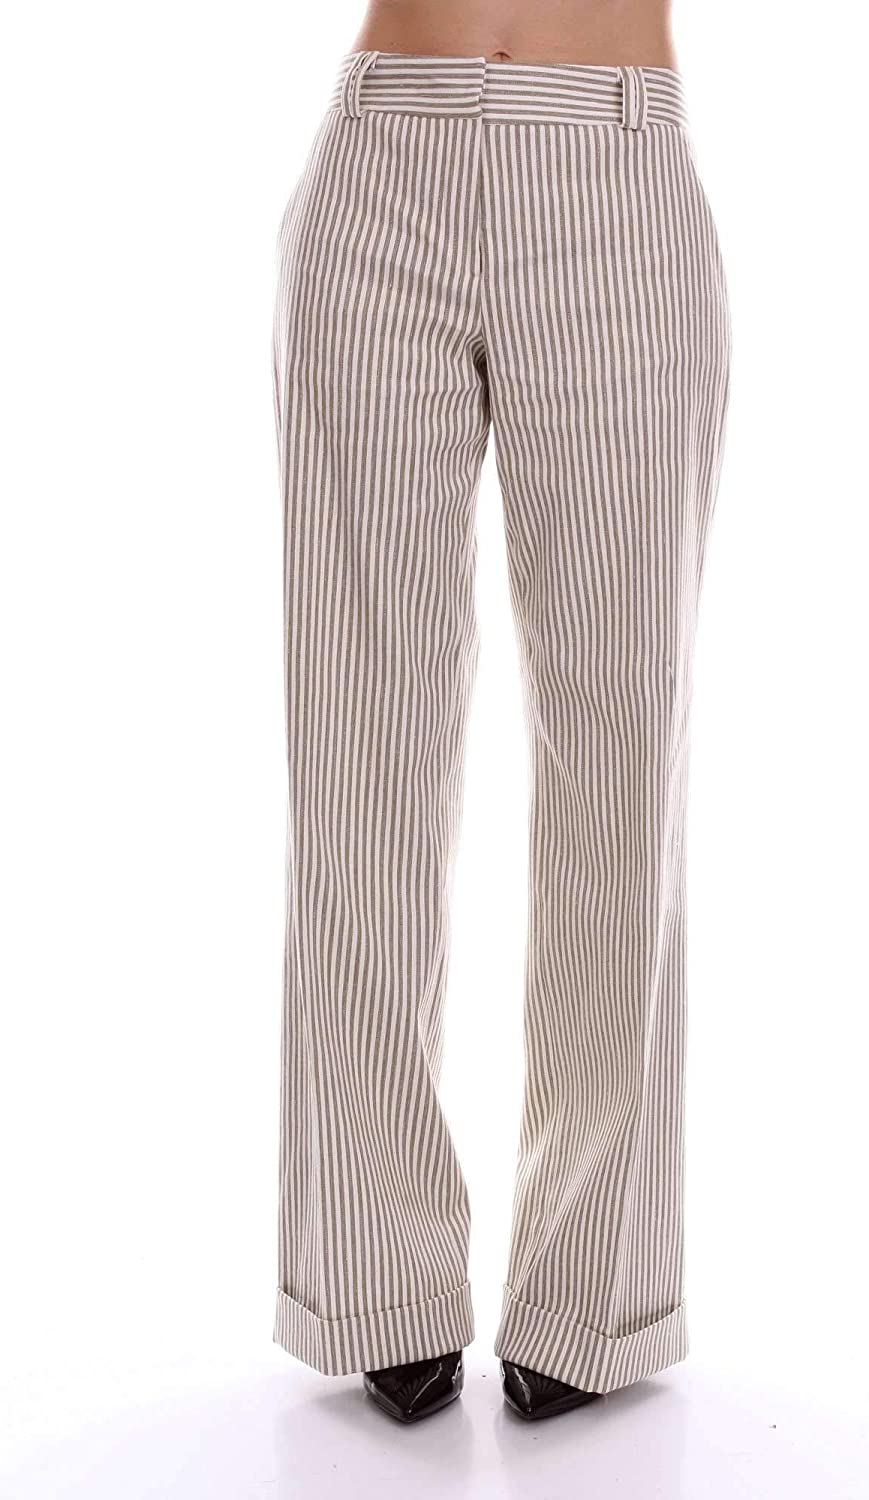 BARBA Women's 8441GRETAWHITE White Cotton Pants